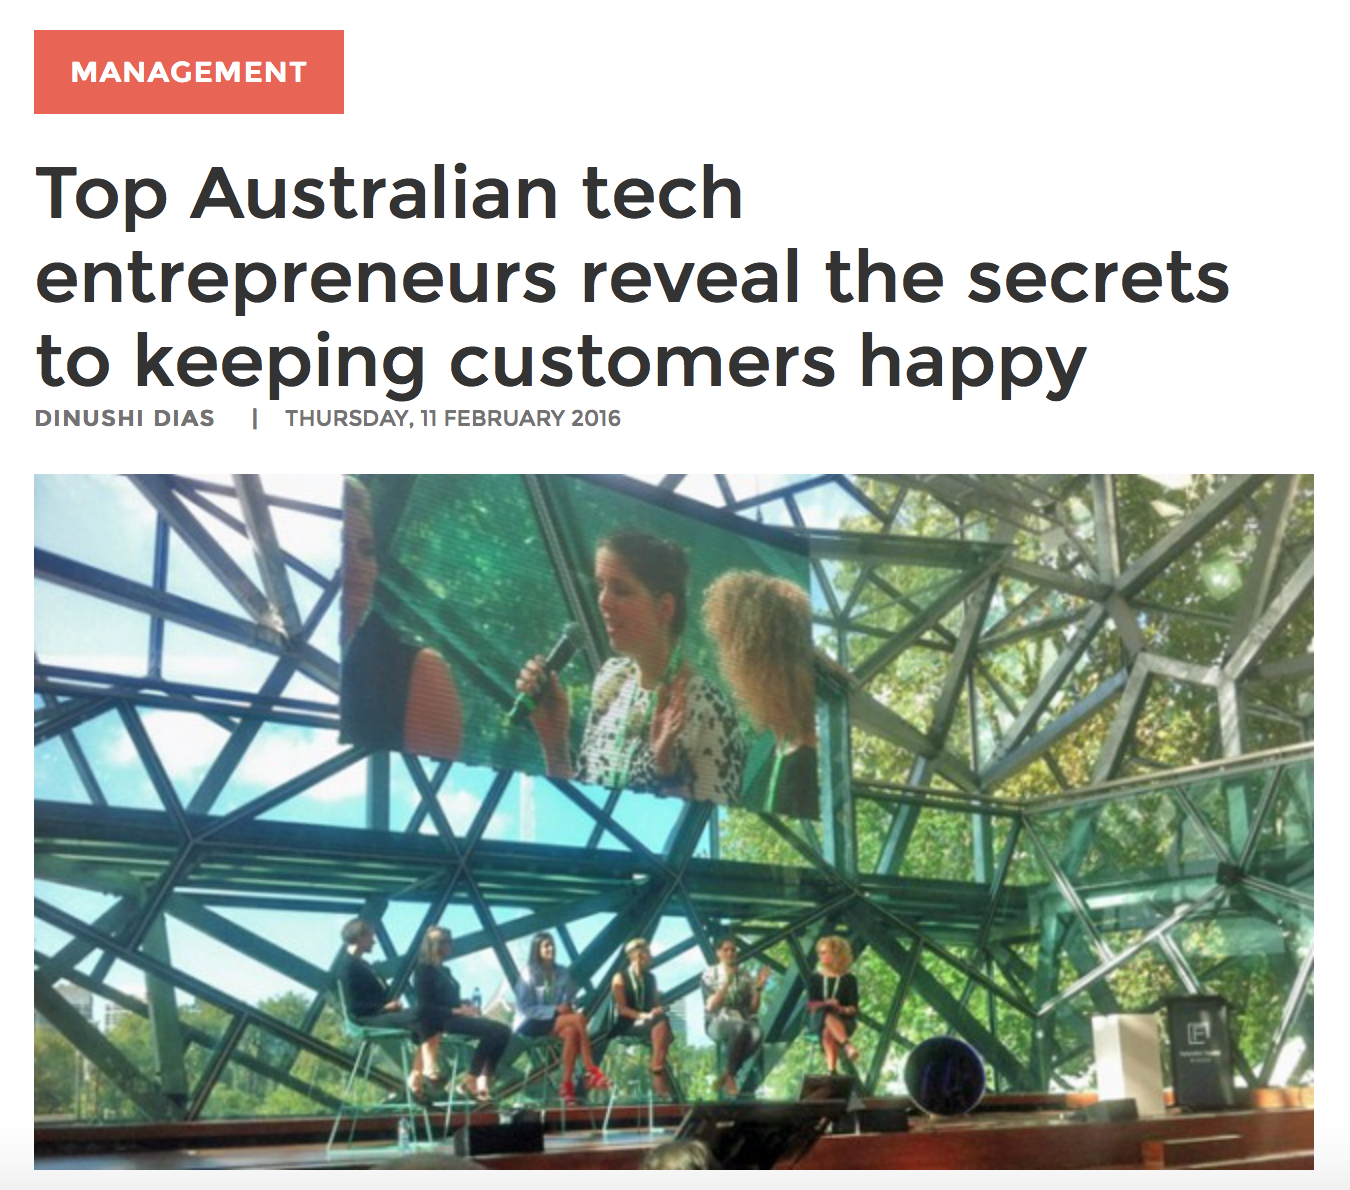 http://www.startupsmart.com.au/advice/leadership-advice/leadership/top-australian-female-tech-entrepreneurs-reveal-the-secrets-to-keeping-customers-happy/